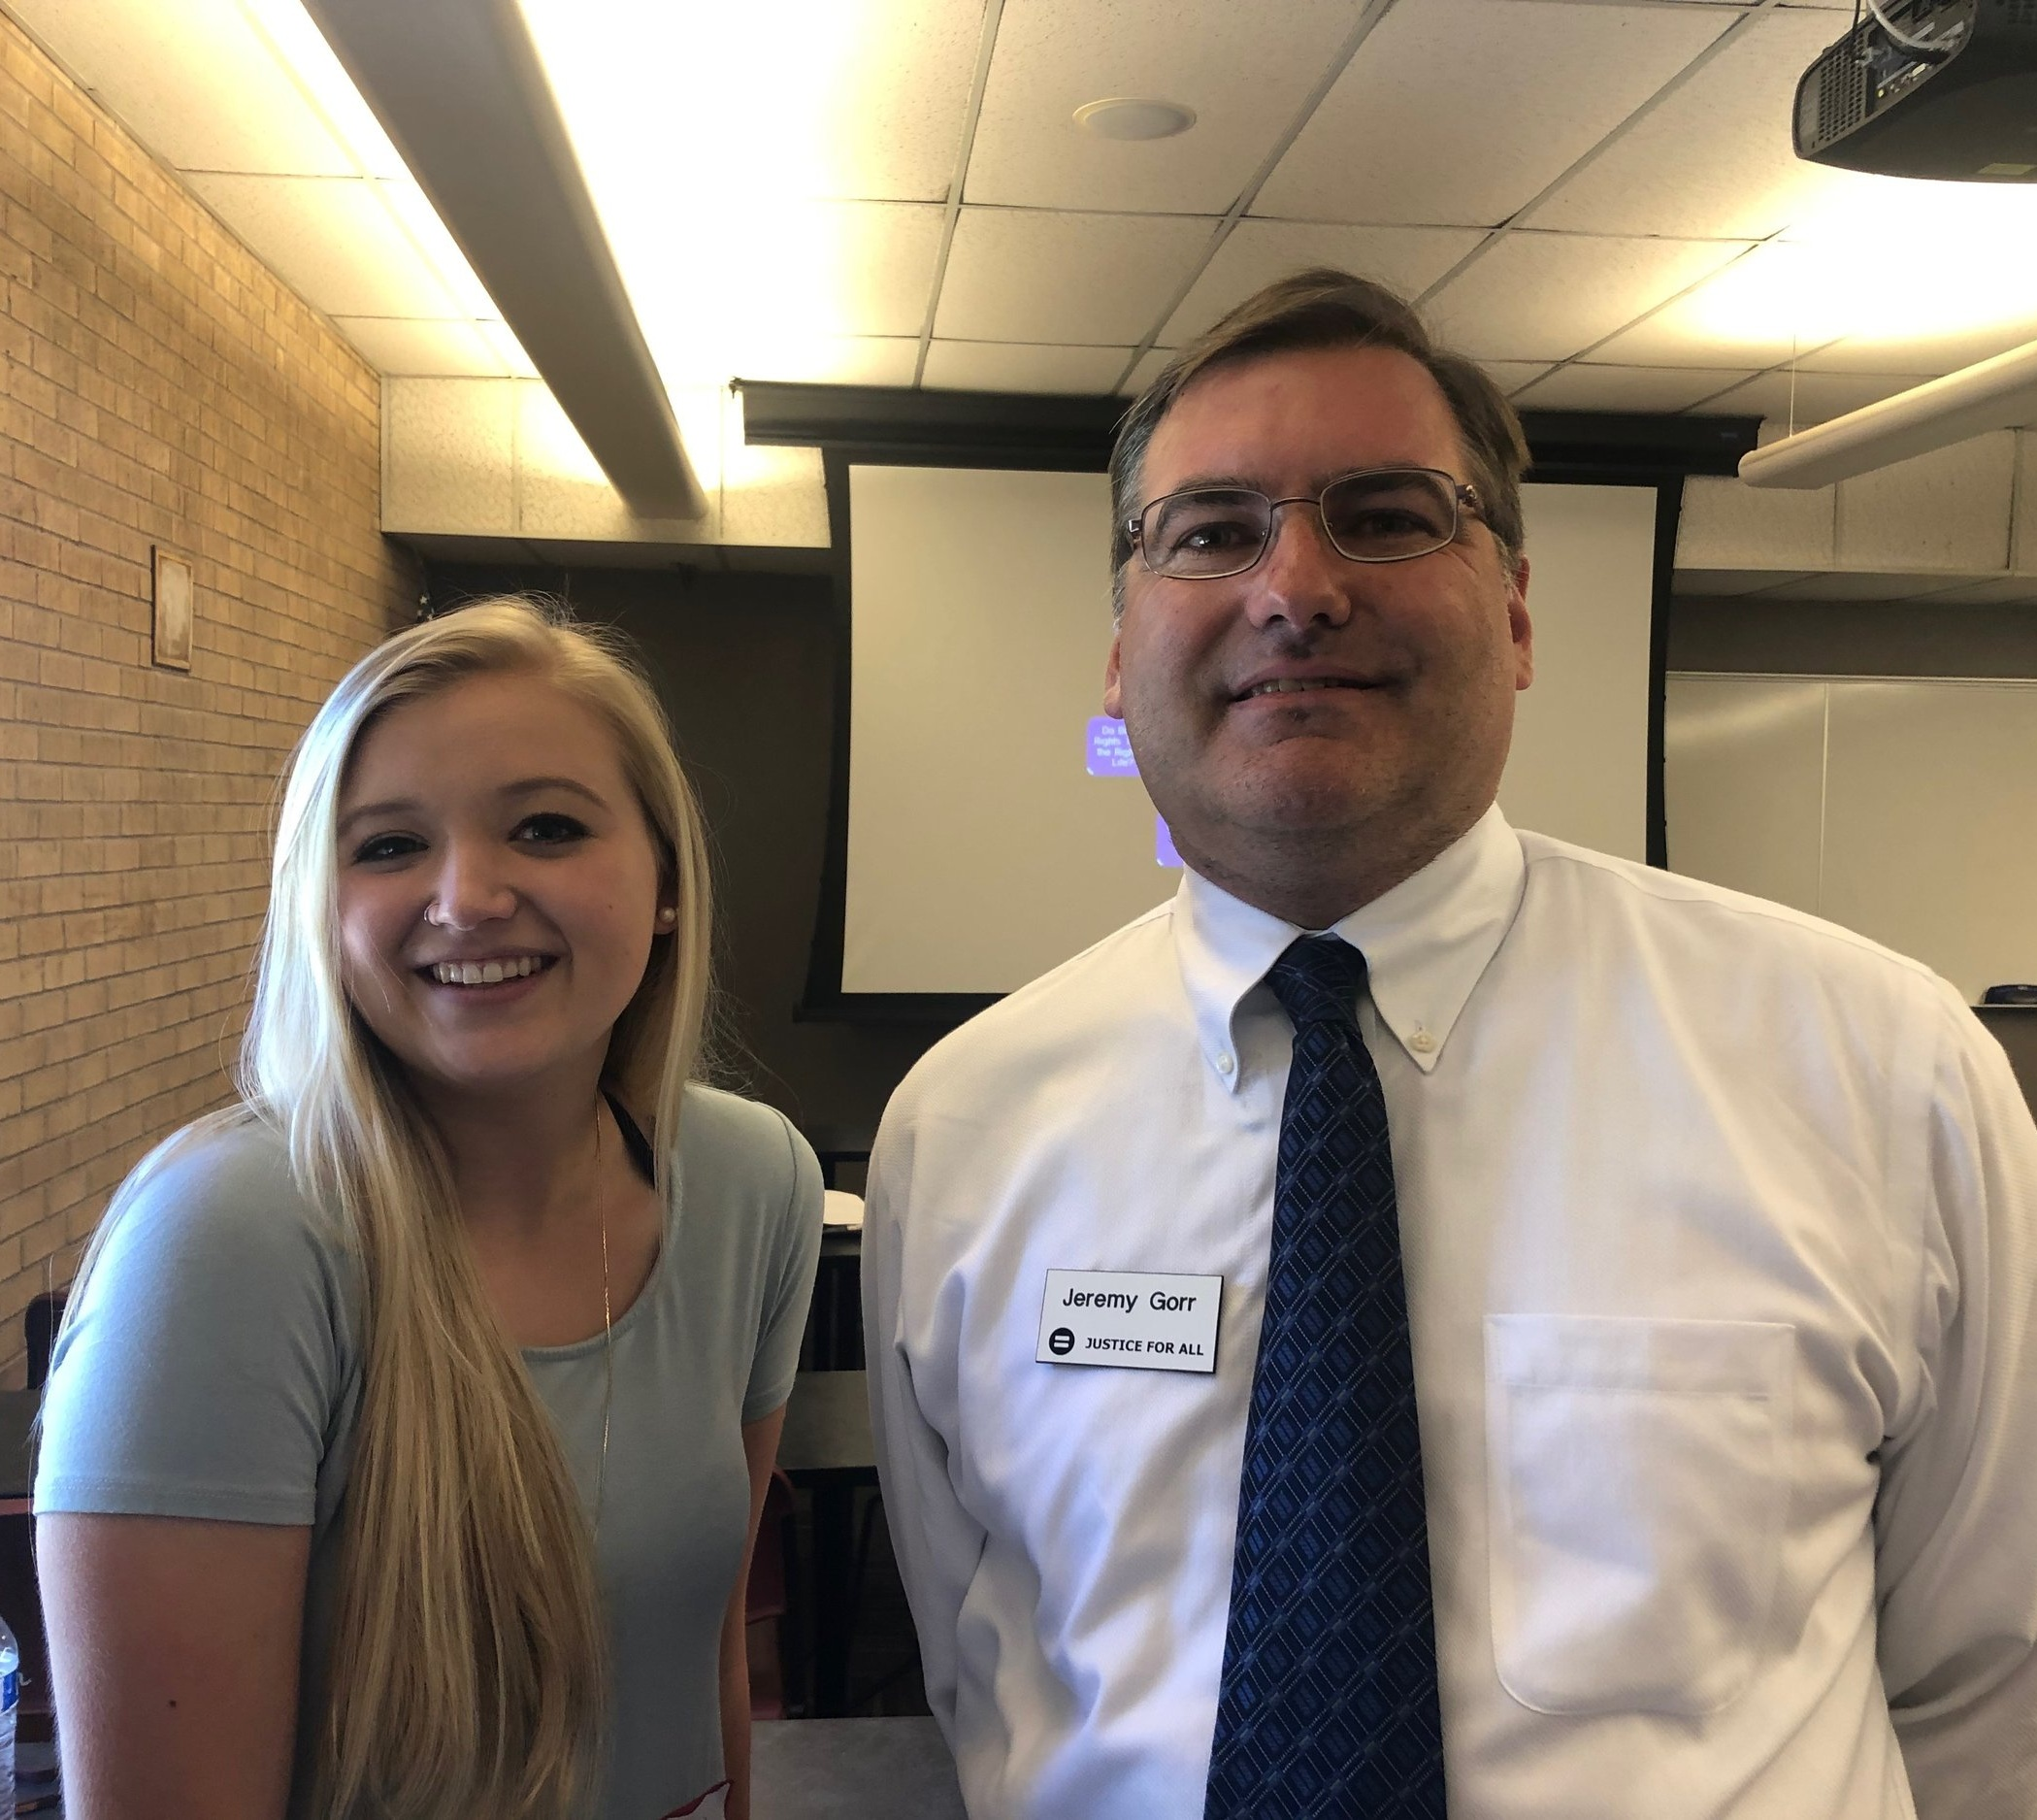 Rylei shared her thoughts about JFA recently when she came to a seminar I taught at her campus, Arizona State University.